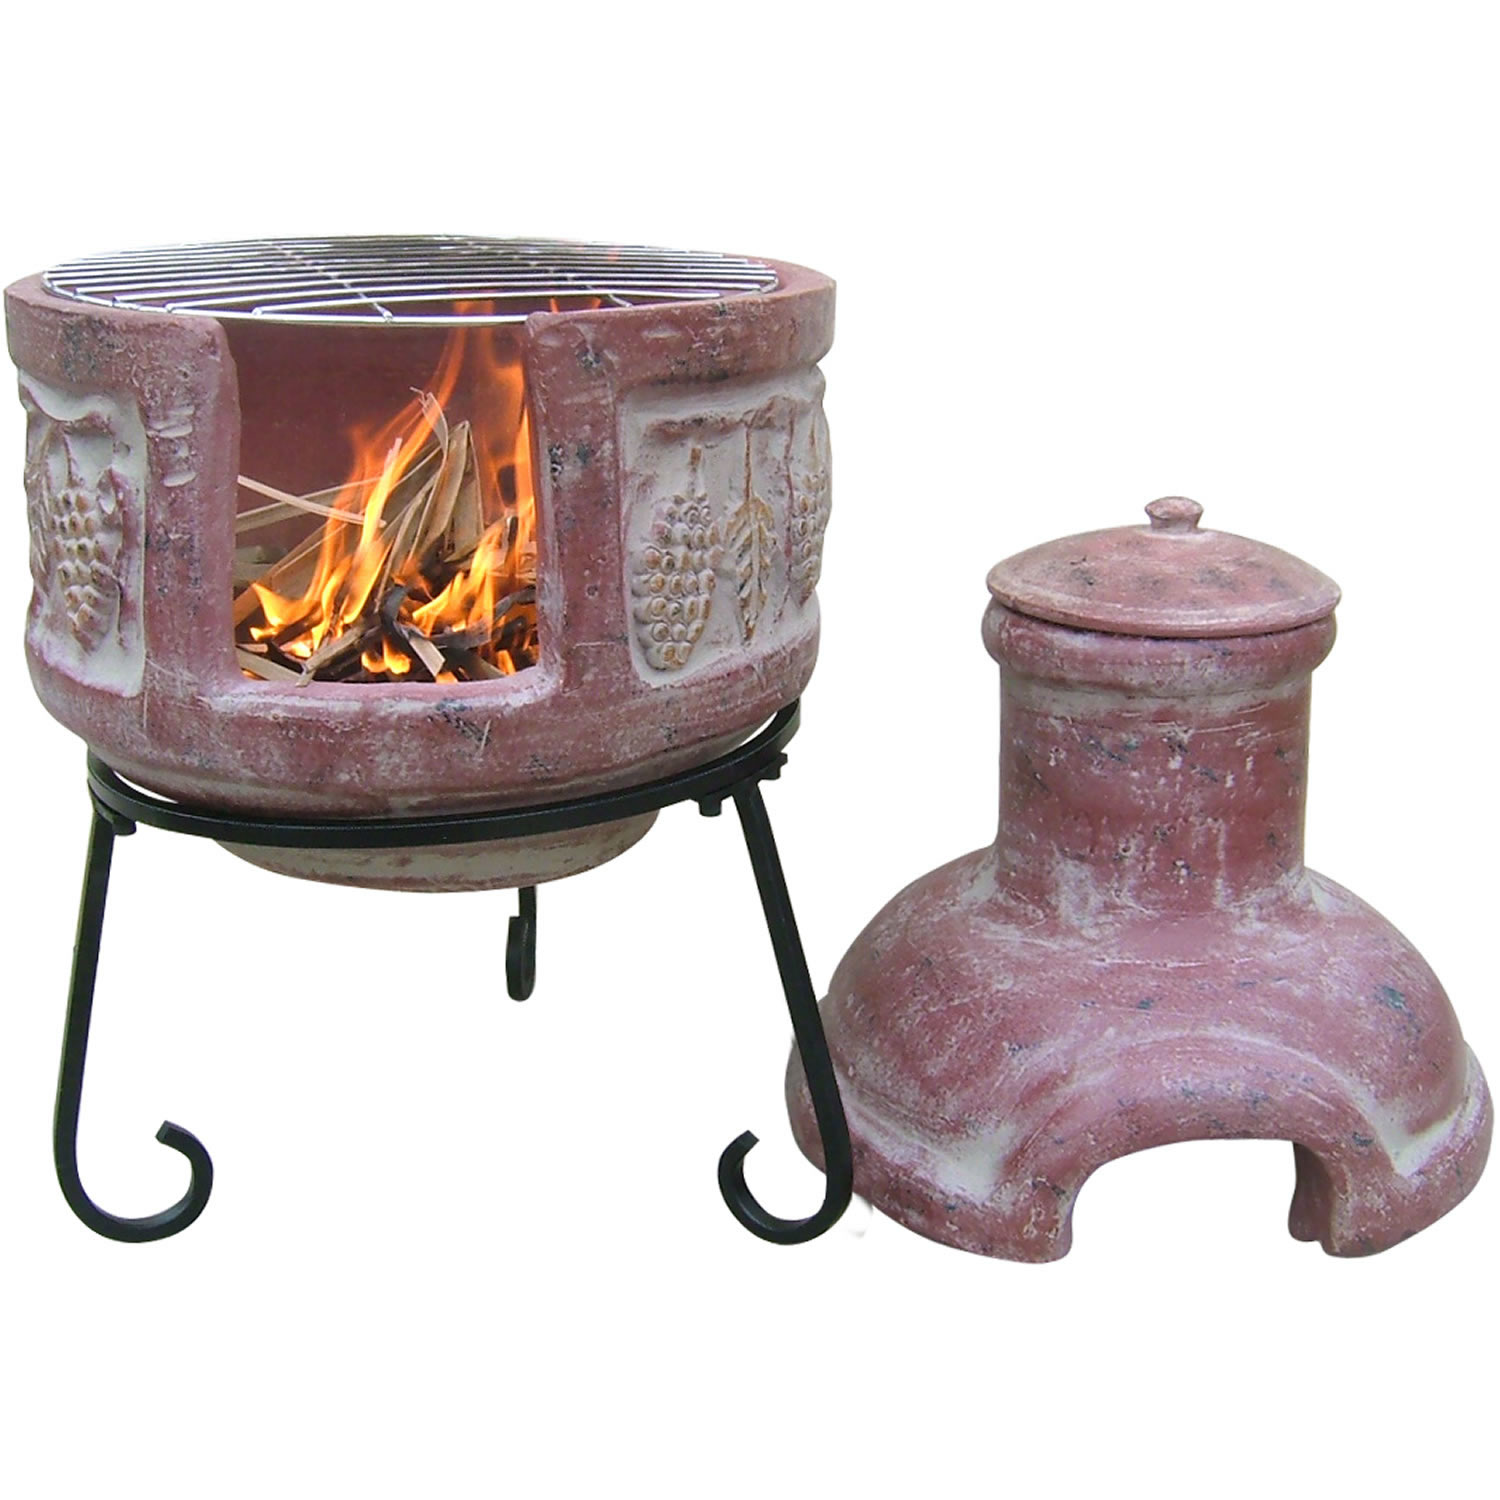 Cheap chiminea fire pit clay garden landscape for Mexican chiminea